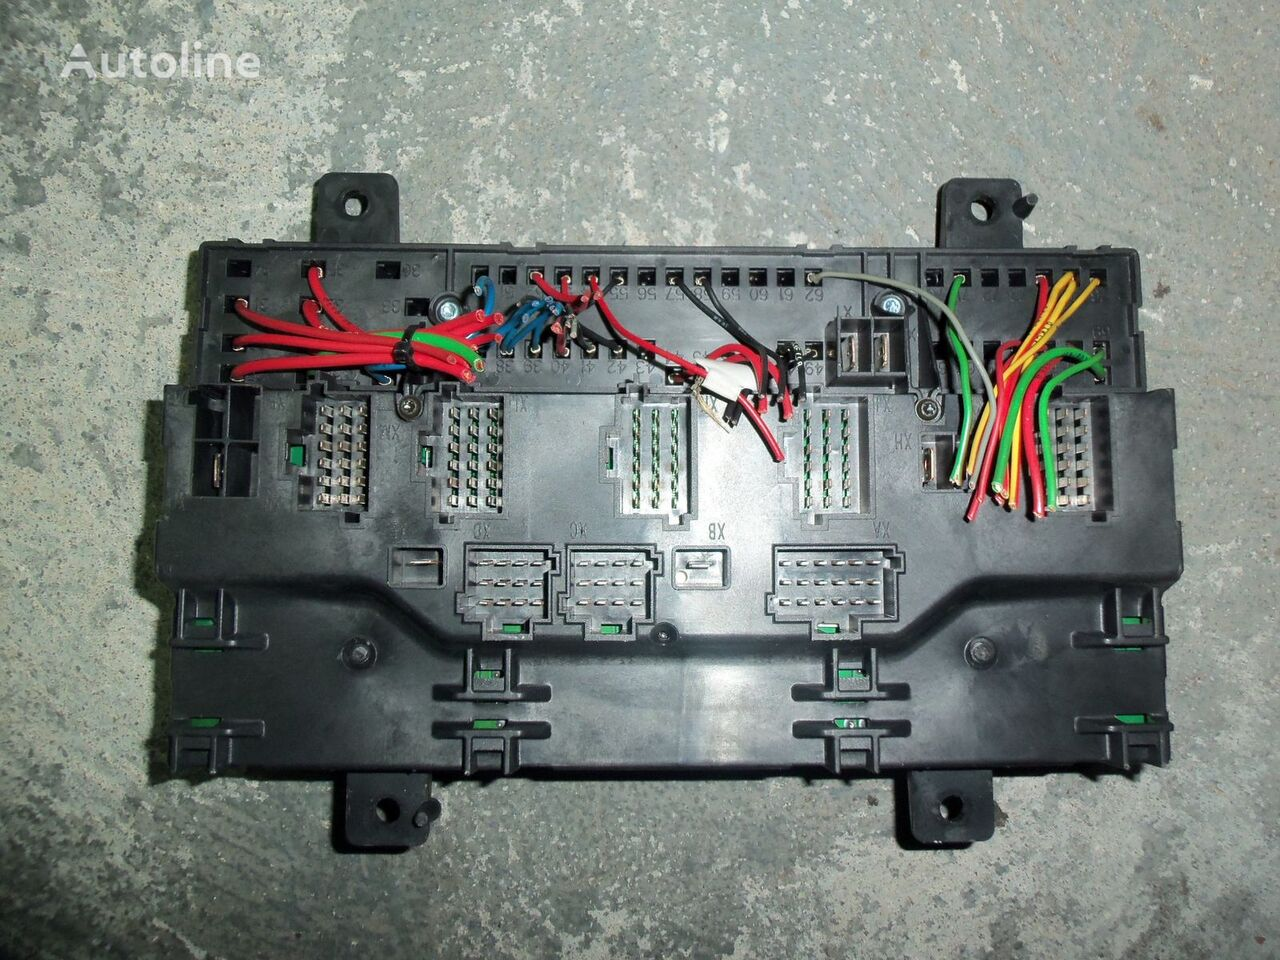 ... VOLVO fuse and relay center, central electrical box 20568055, 217 fuse  block for VOLVO